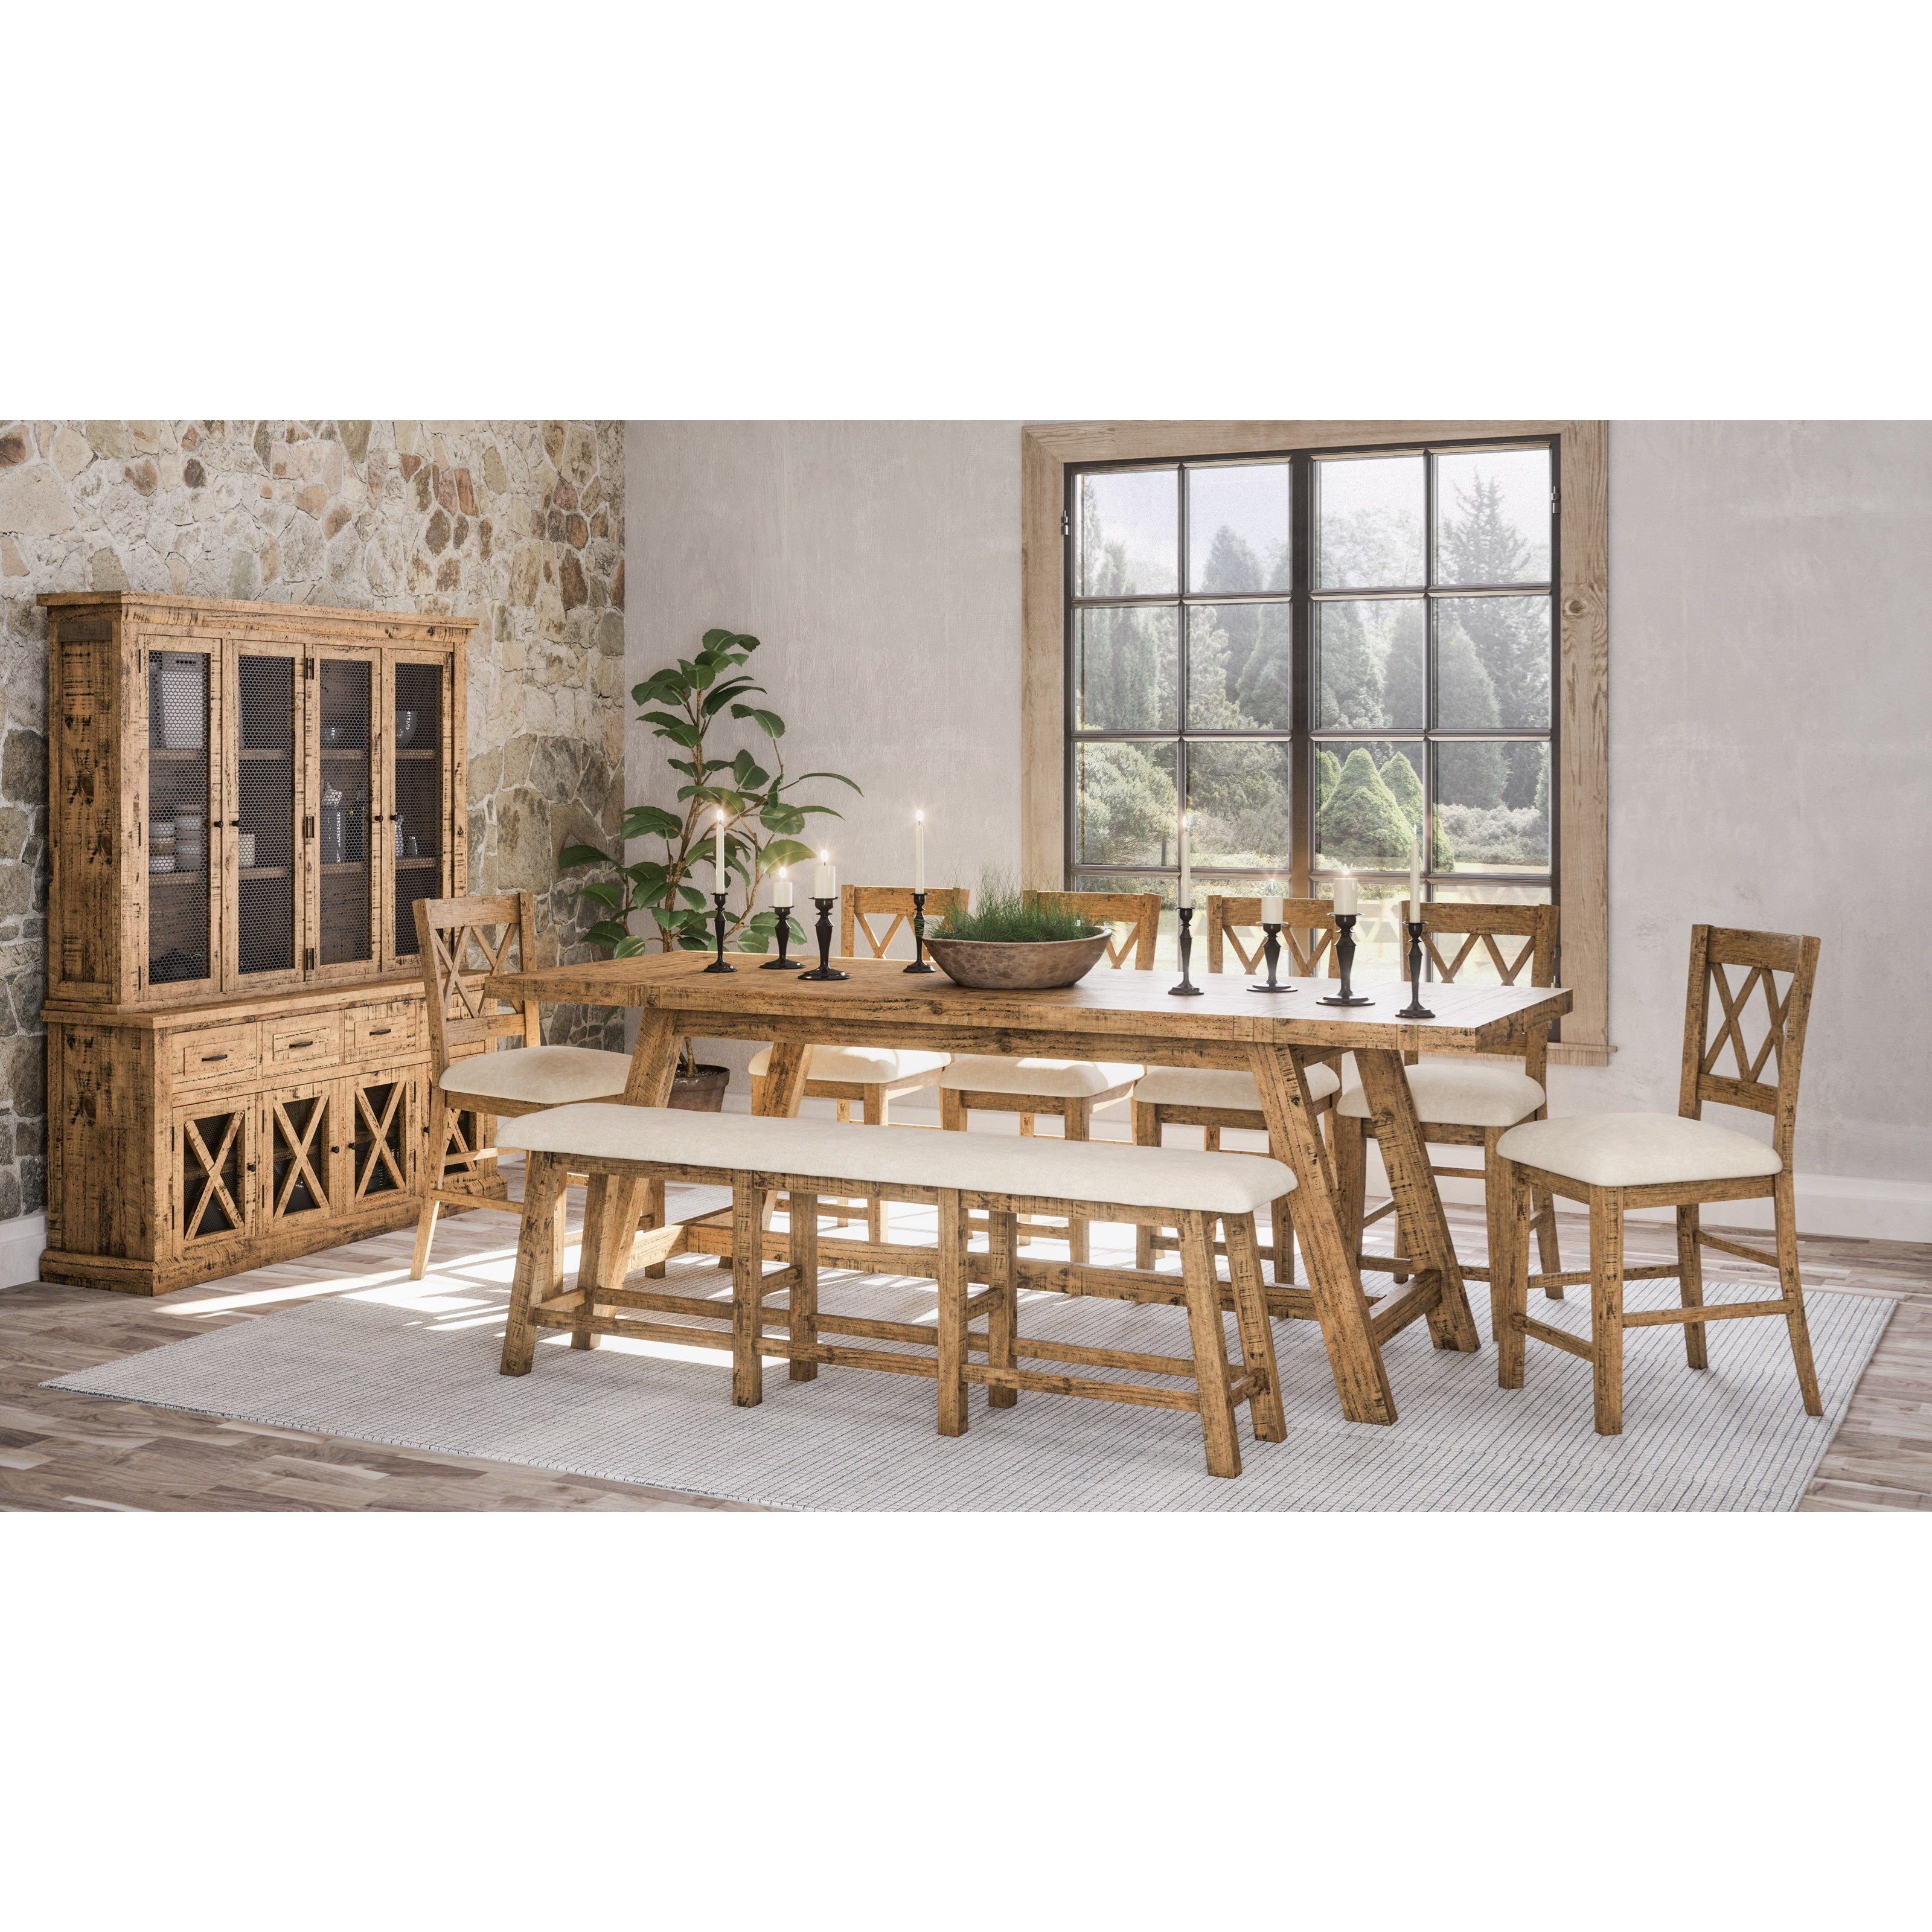 Telluride  Table and Chair Set with Bench by Jofran at Godby Home Furnishings